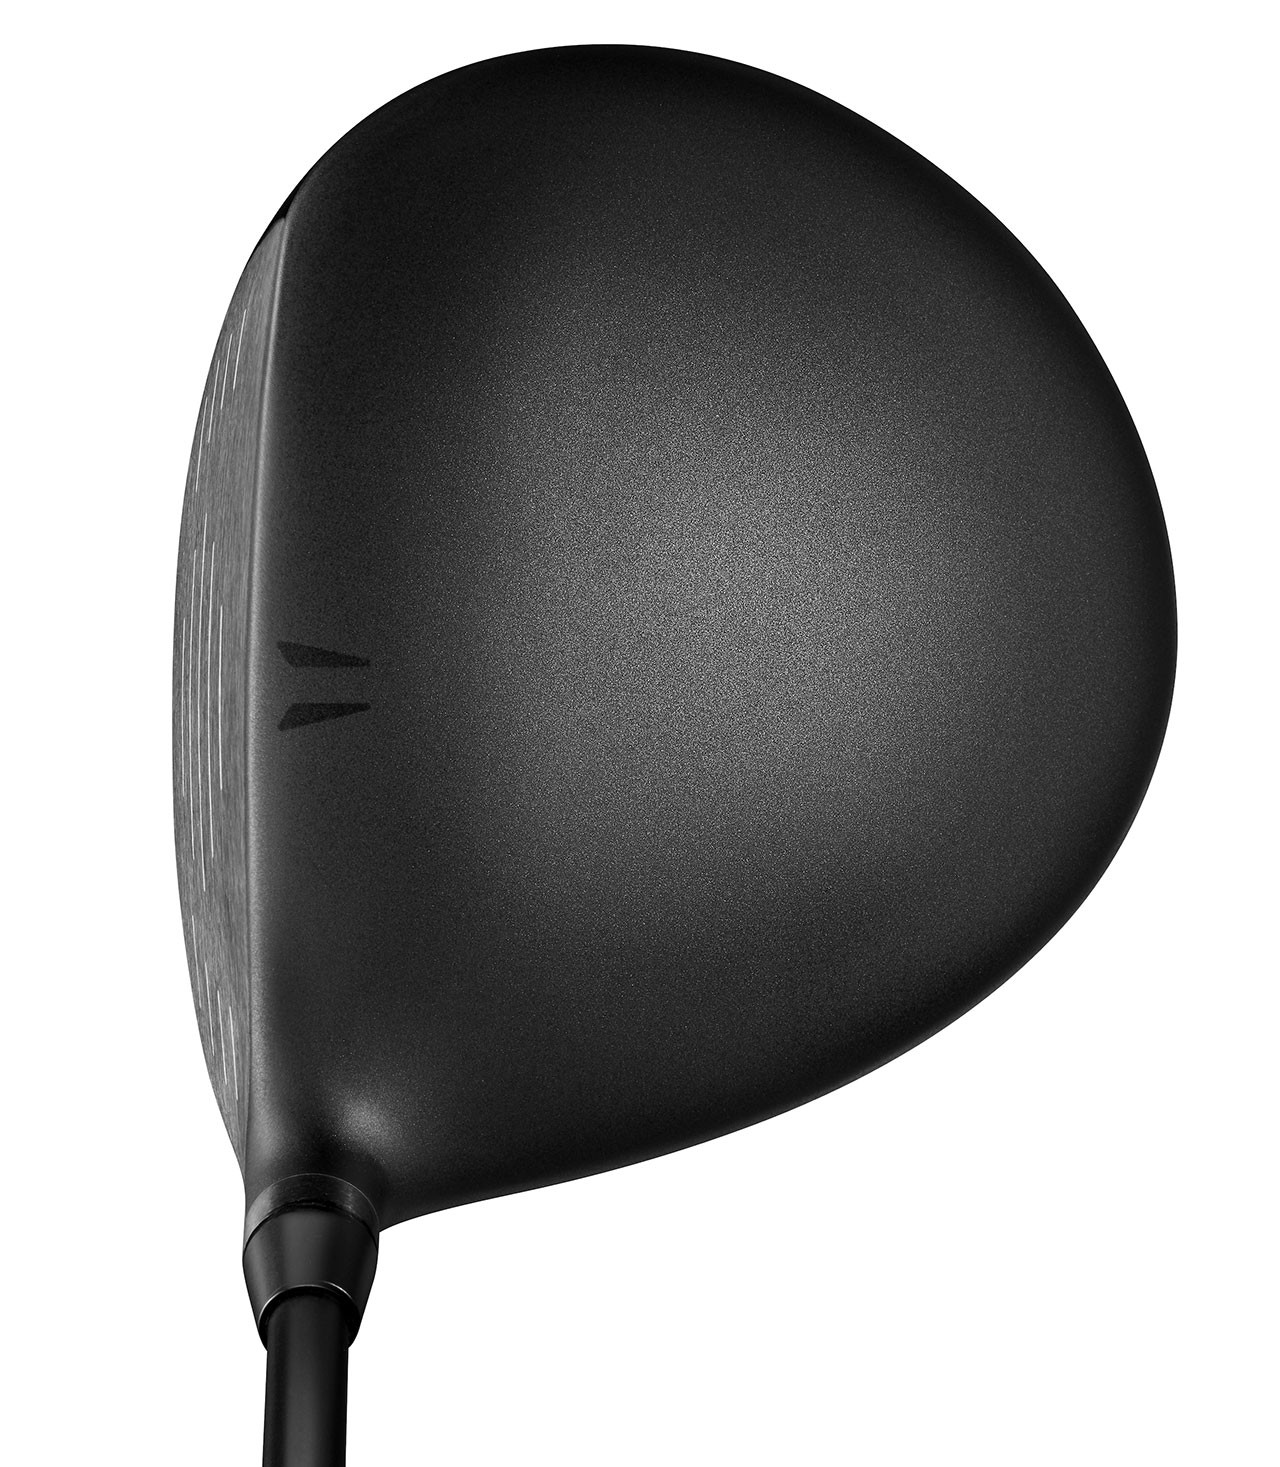 PXG 0311X driver